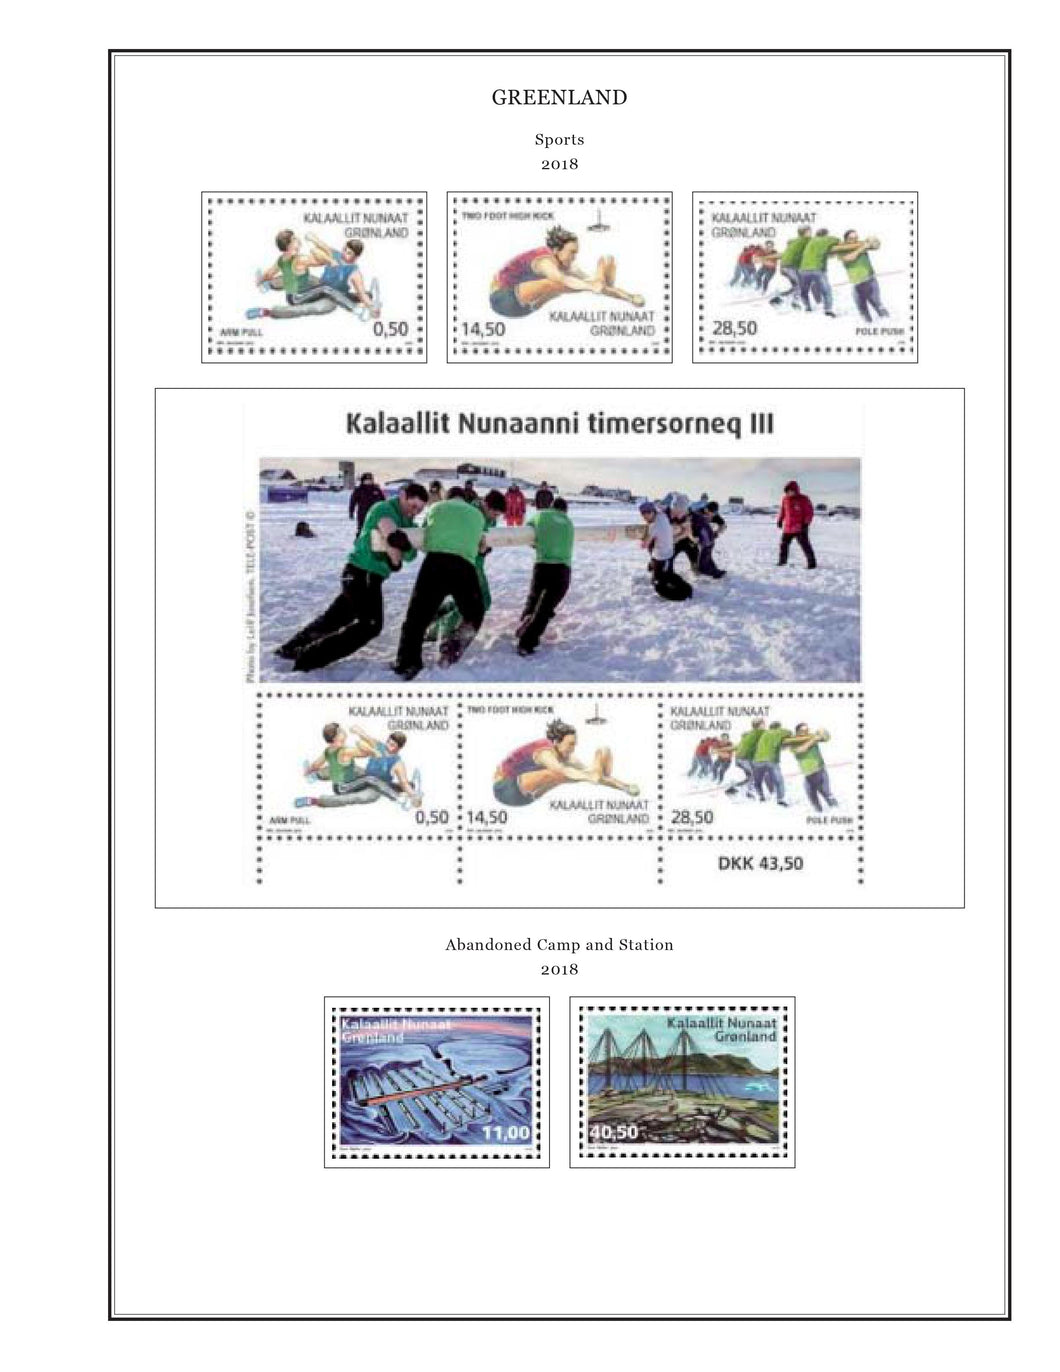 Greenland Album Pages Color Illustrated 2016-2018 Supplement PDF file